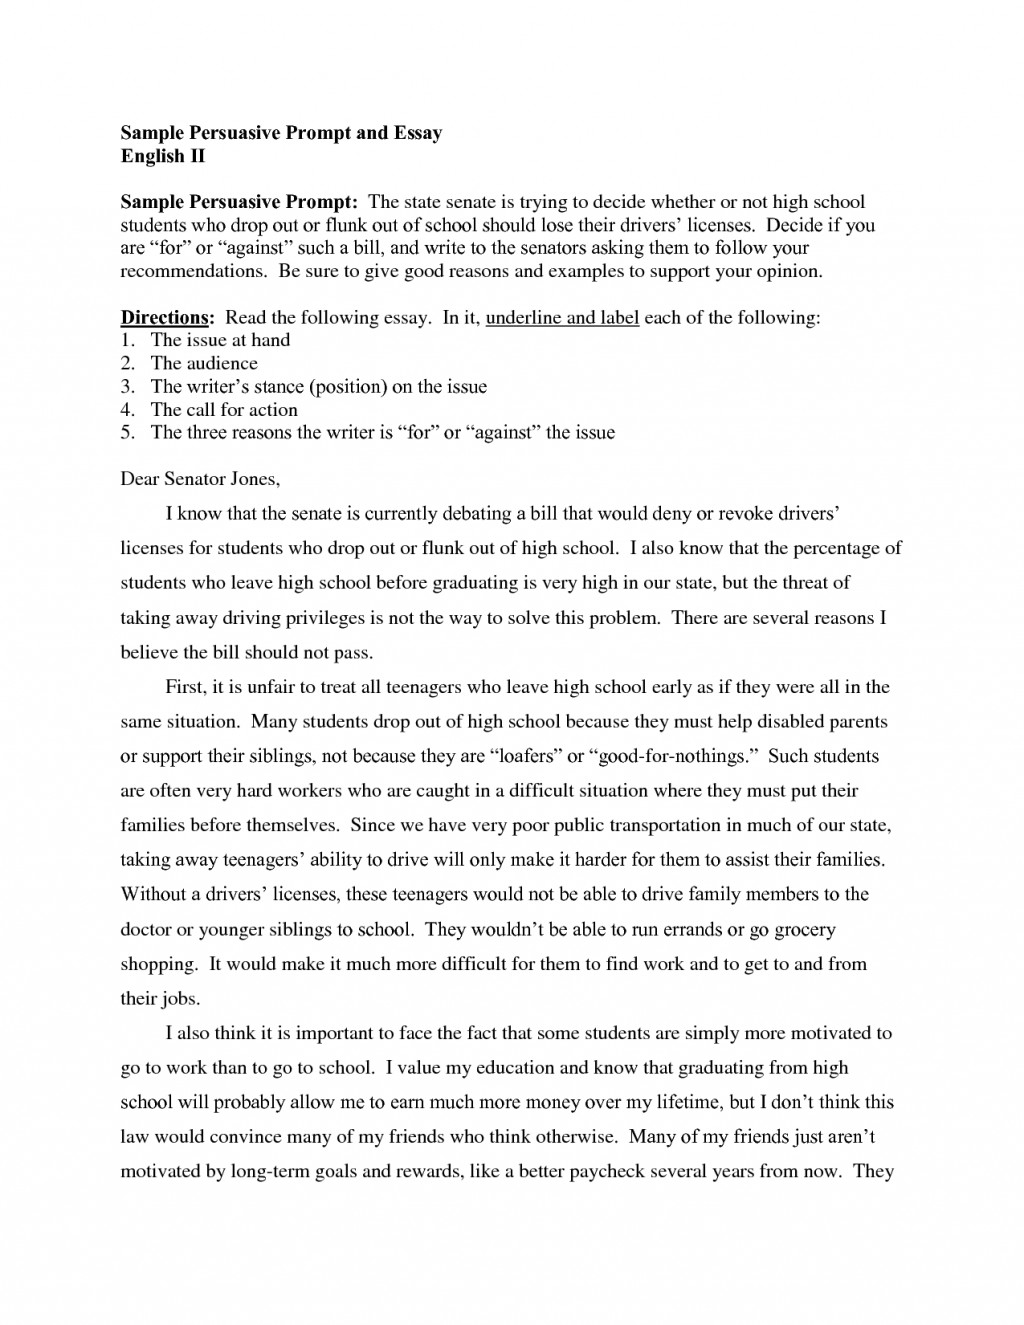 010 Research Paper Persuasive Essay Topics For High School Sample Ideas Highschool Students Good Prompt Funny Easy Fun List Of Seniors Writing English Staggering Large